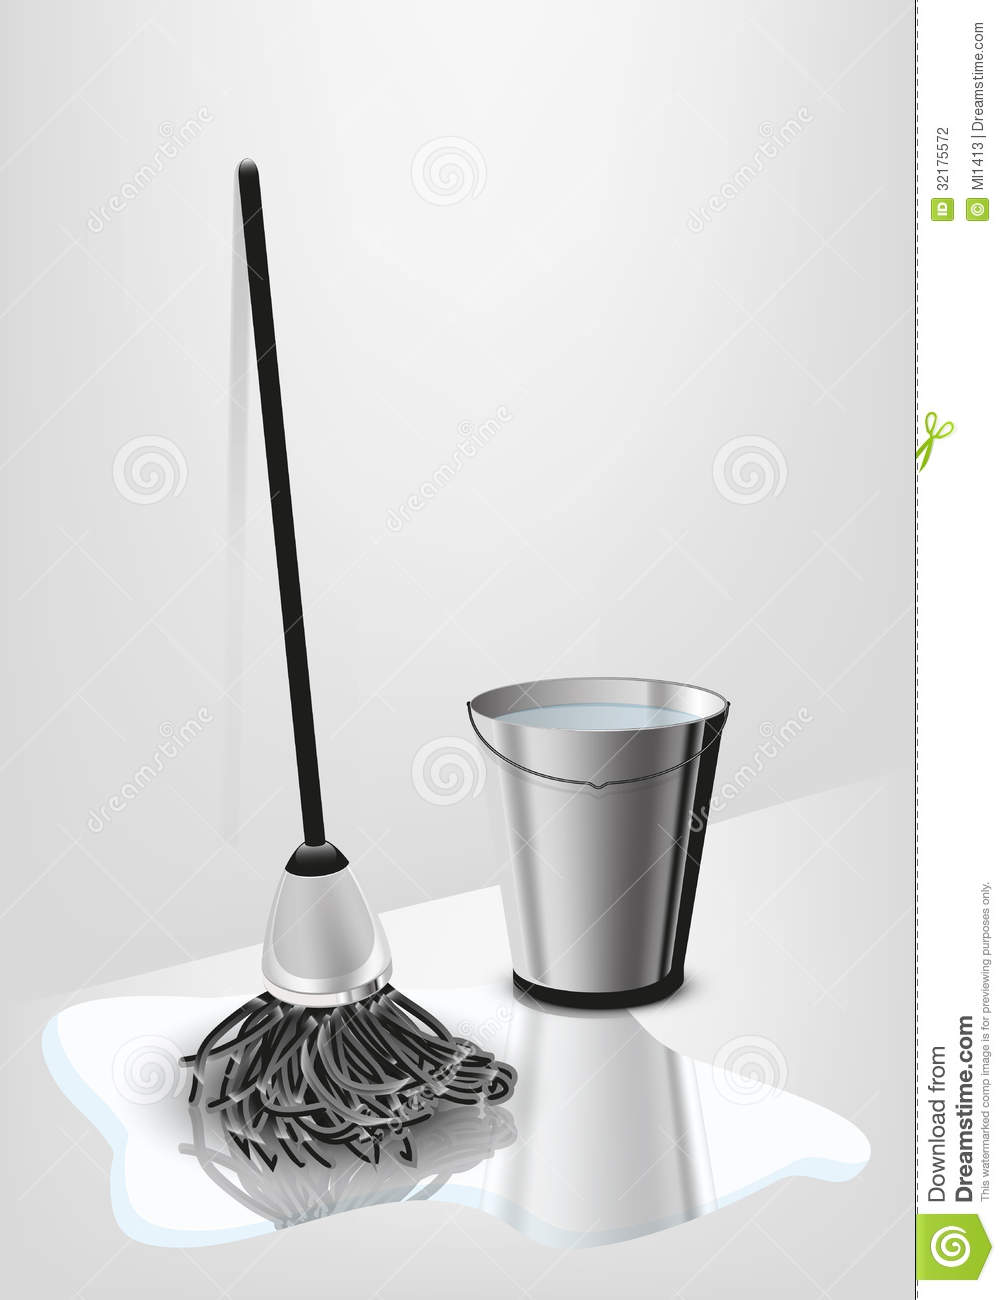 Mop and bucket vector illustration eps 10 abstract form.